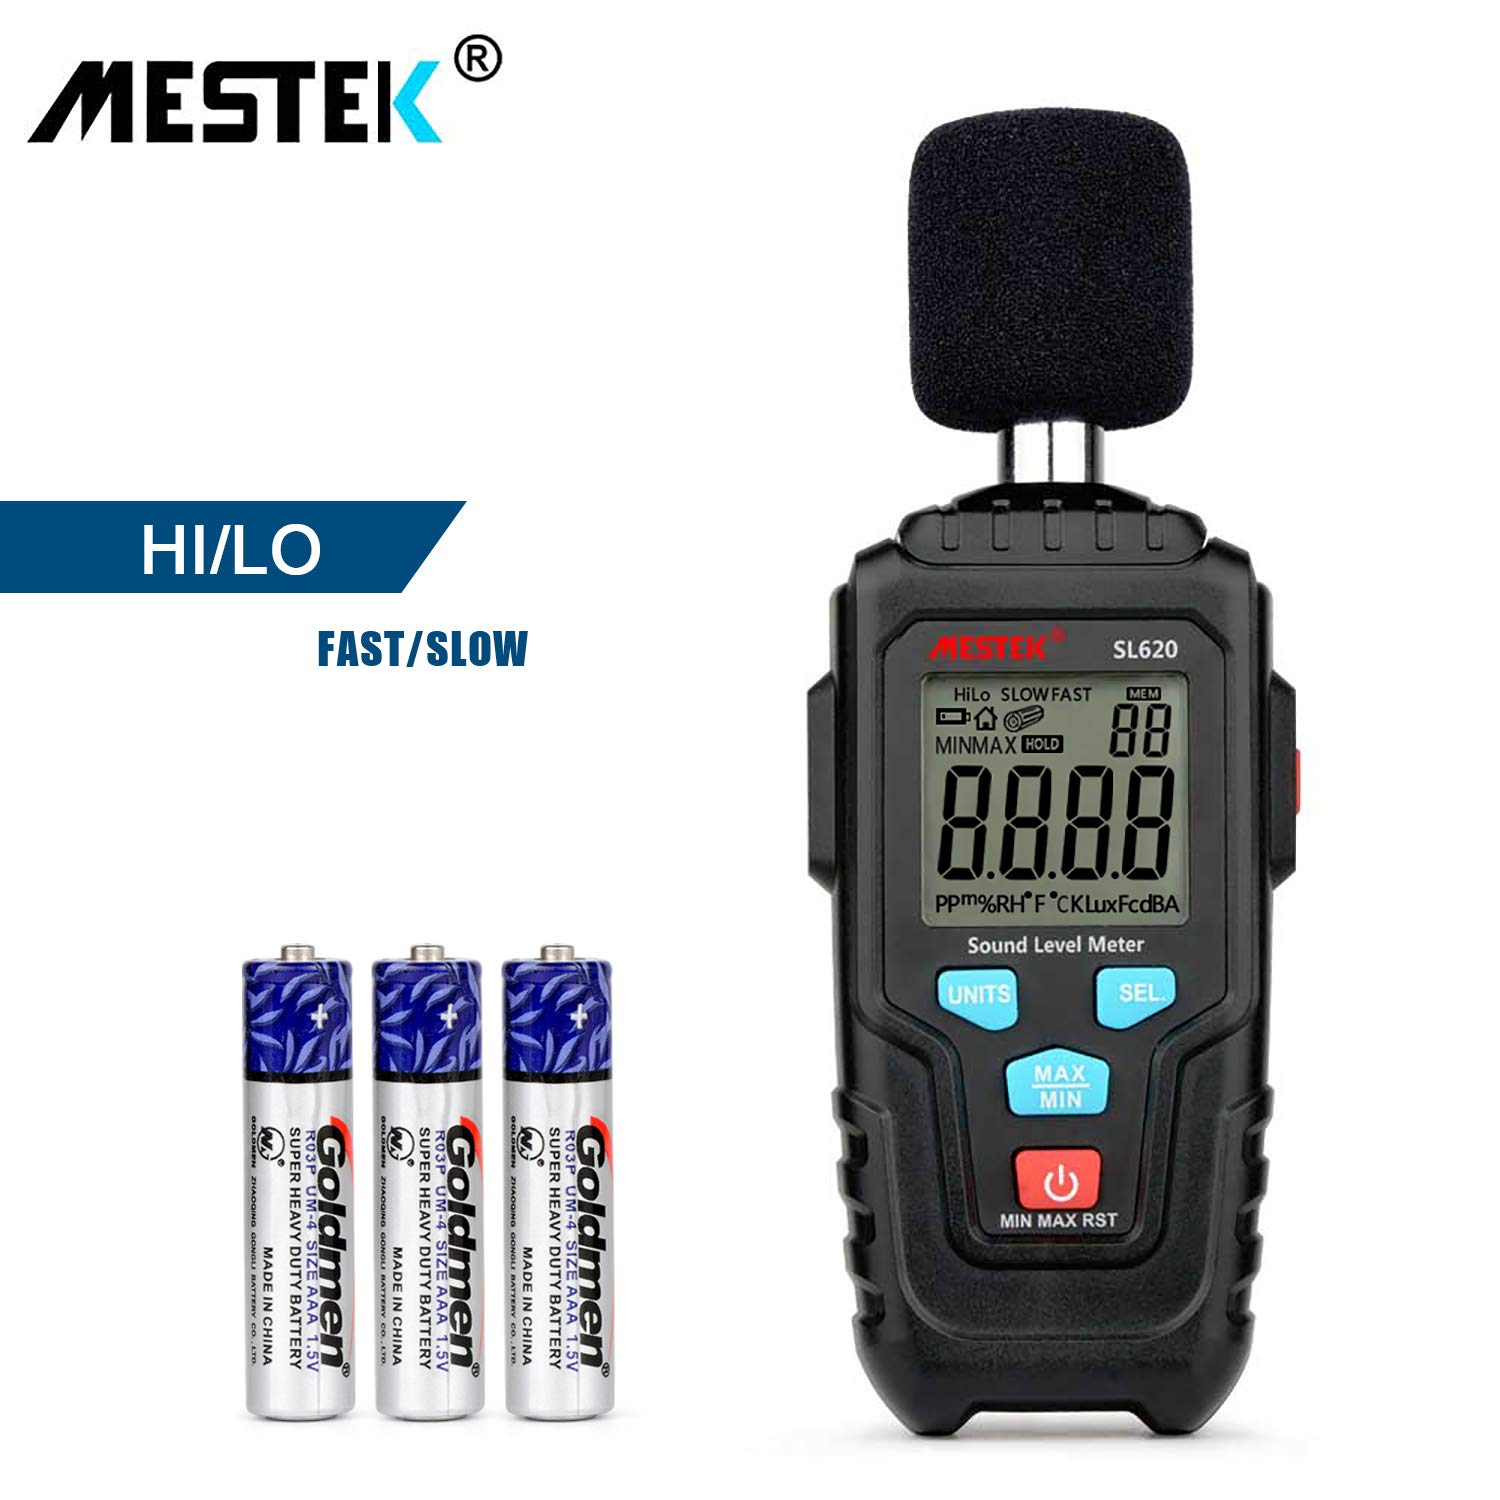 Decibel Meter Digital Sound Level Meter MESTKE 30 - 130 dB Noise Volume Measuring Instrument Reader Self-Calibrated Max Min Data Hold Fast/Slow Mode LCD Backlight Display/Flashlight by MESTEK